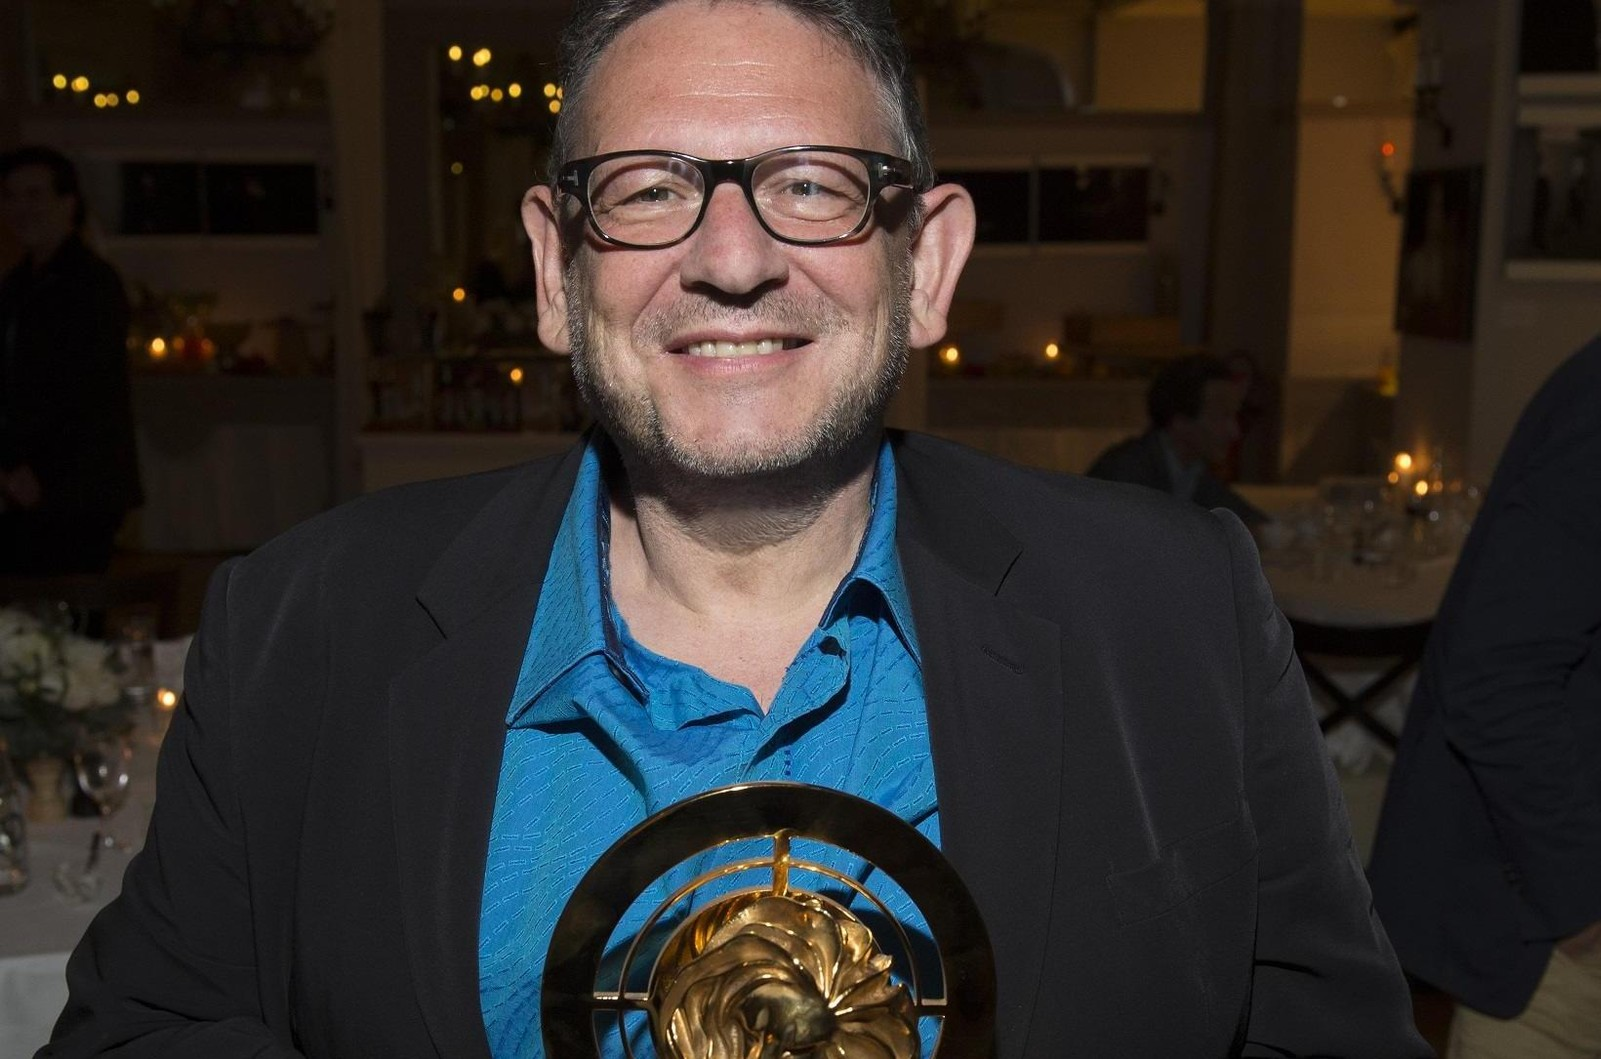 Sir Lucian Grainge was honored as the Cannes Lion Media Person of the Year 2017 during a ceremony held at the Le Petit Maison De Nicole, Cannes